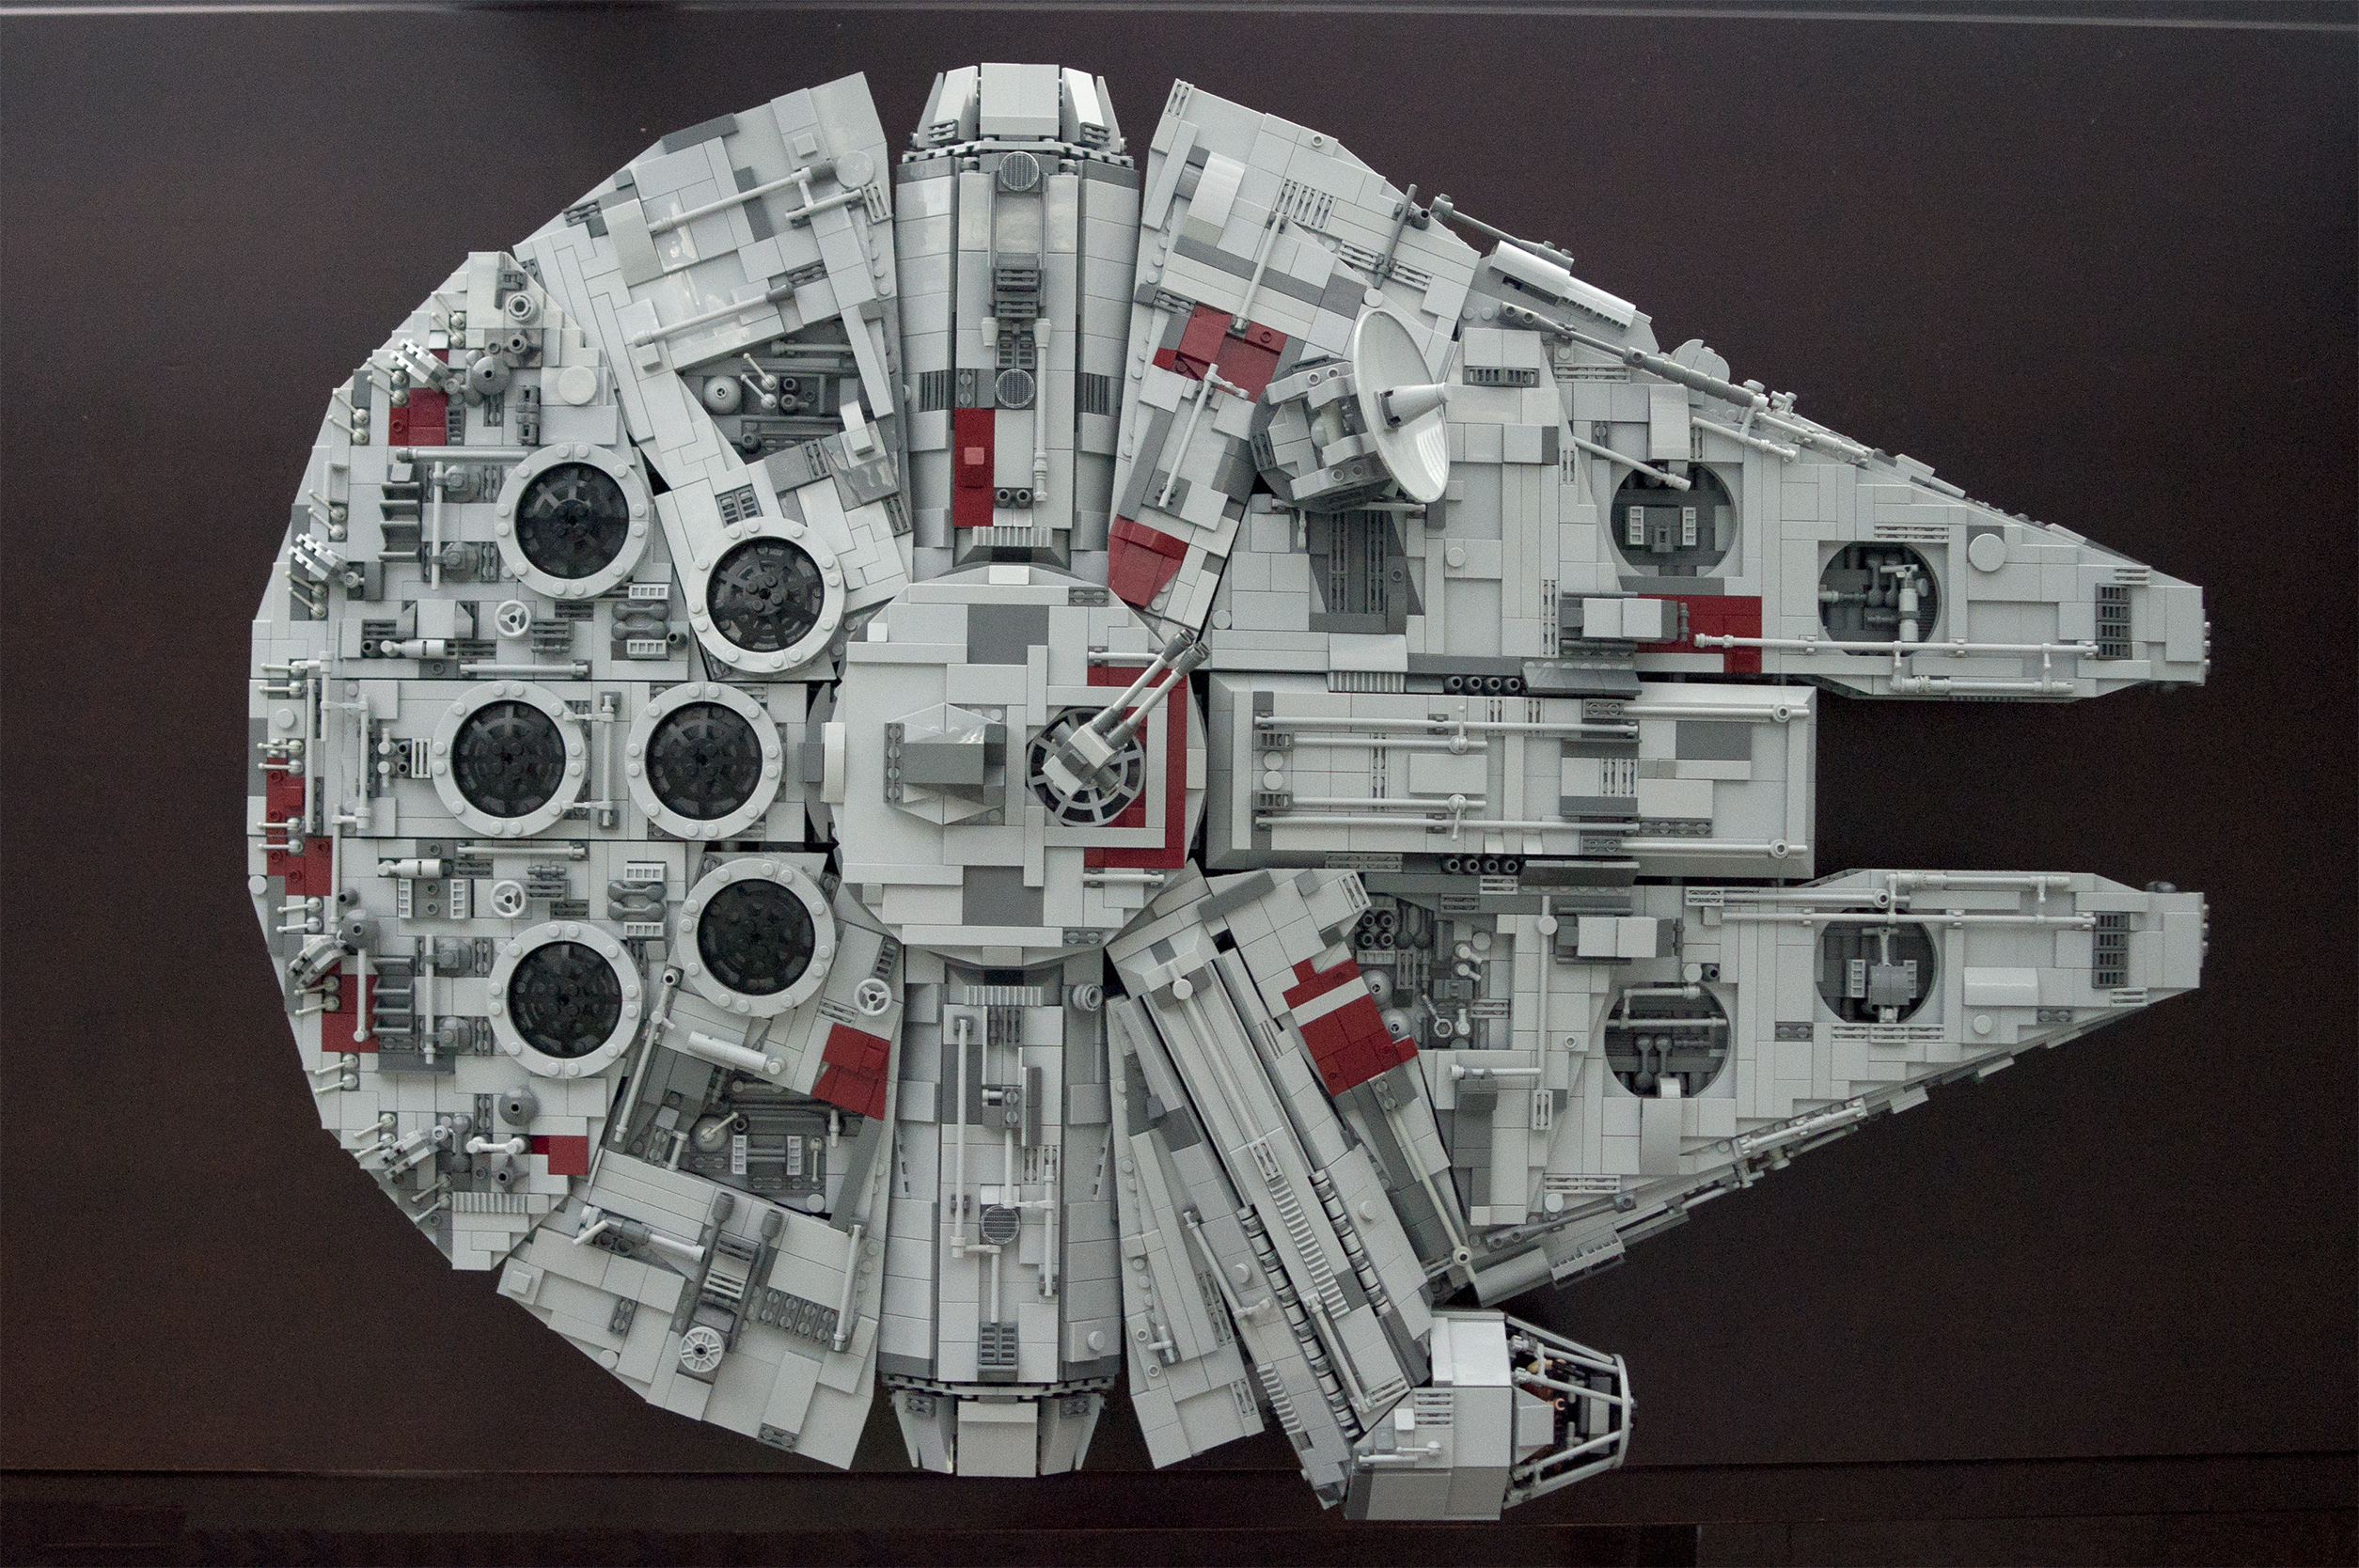 We\'re doing Lego today? Here\'s my heavily modified, almost studless 10179 Falcon. Built from scratch, not a set.